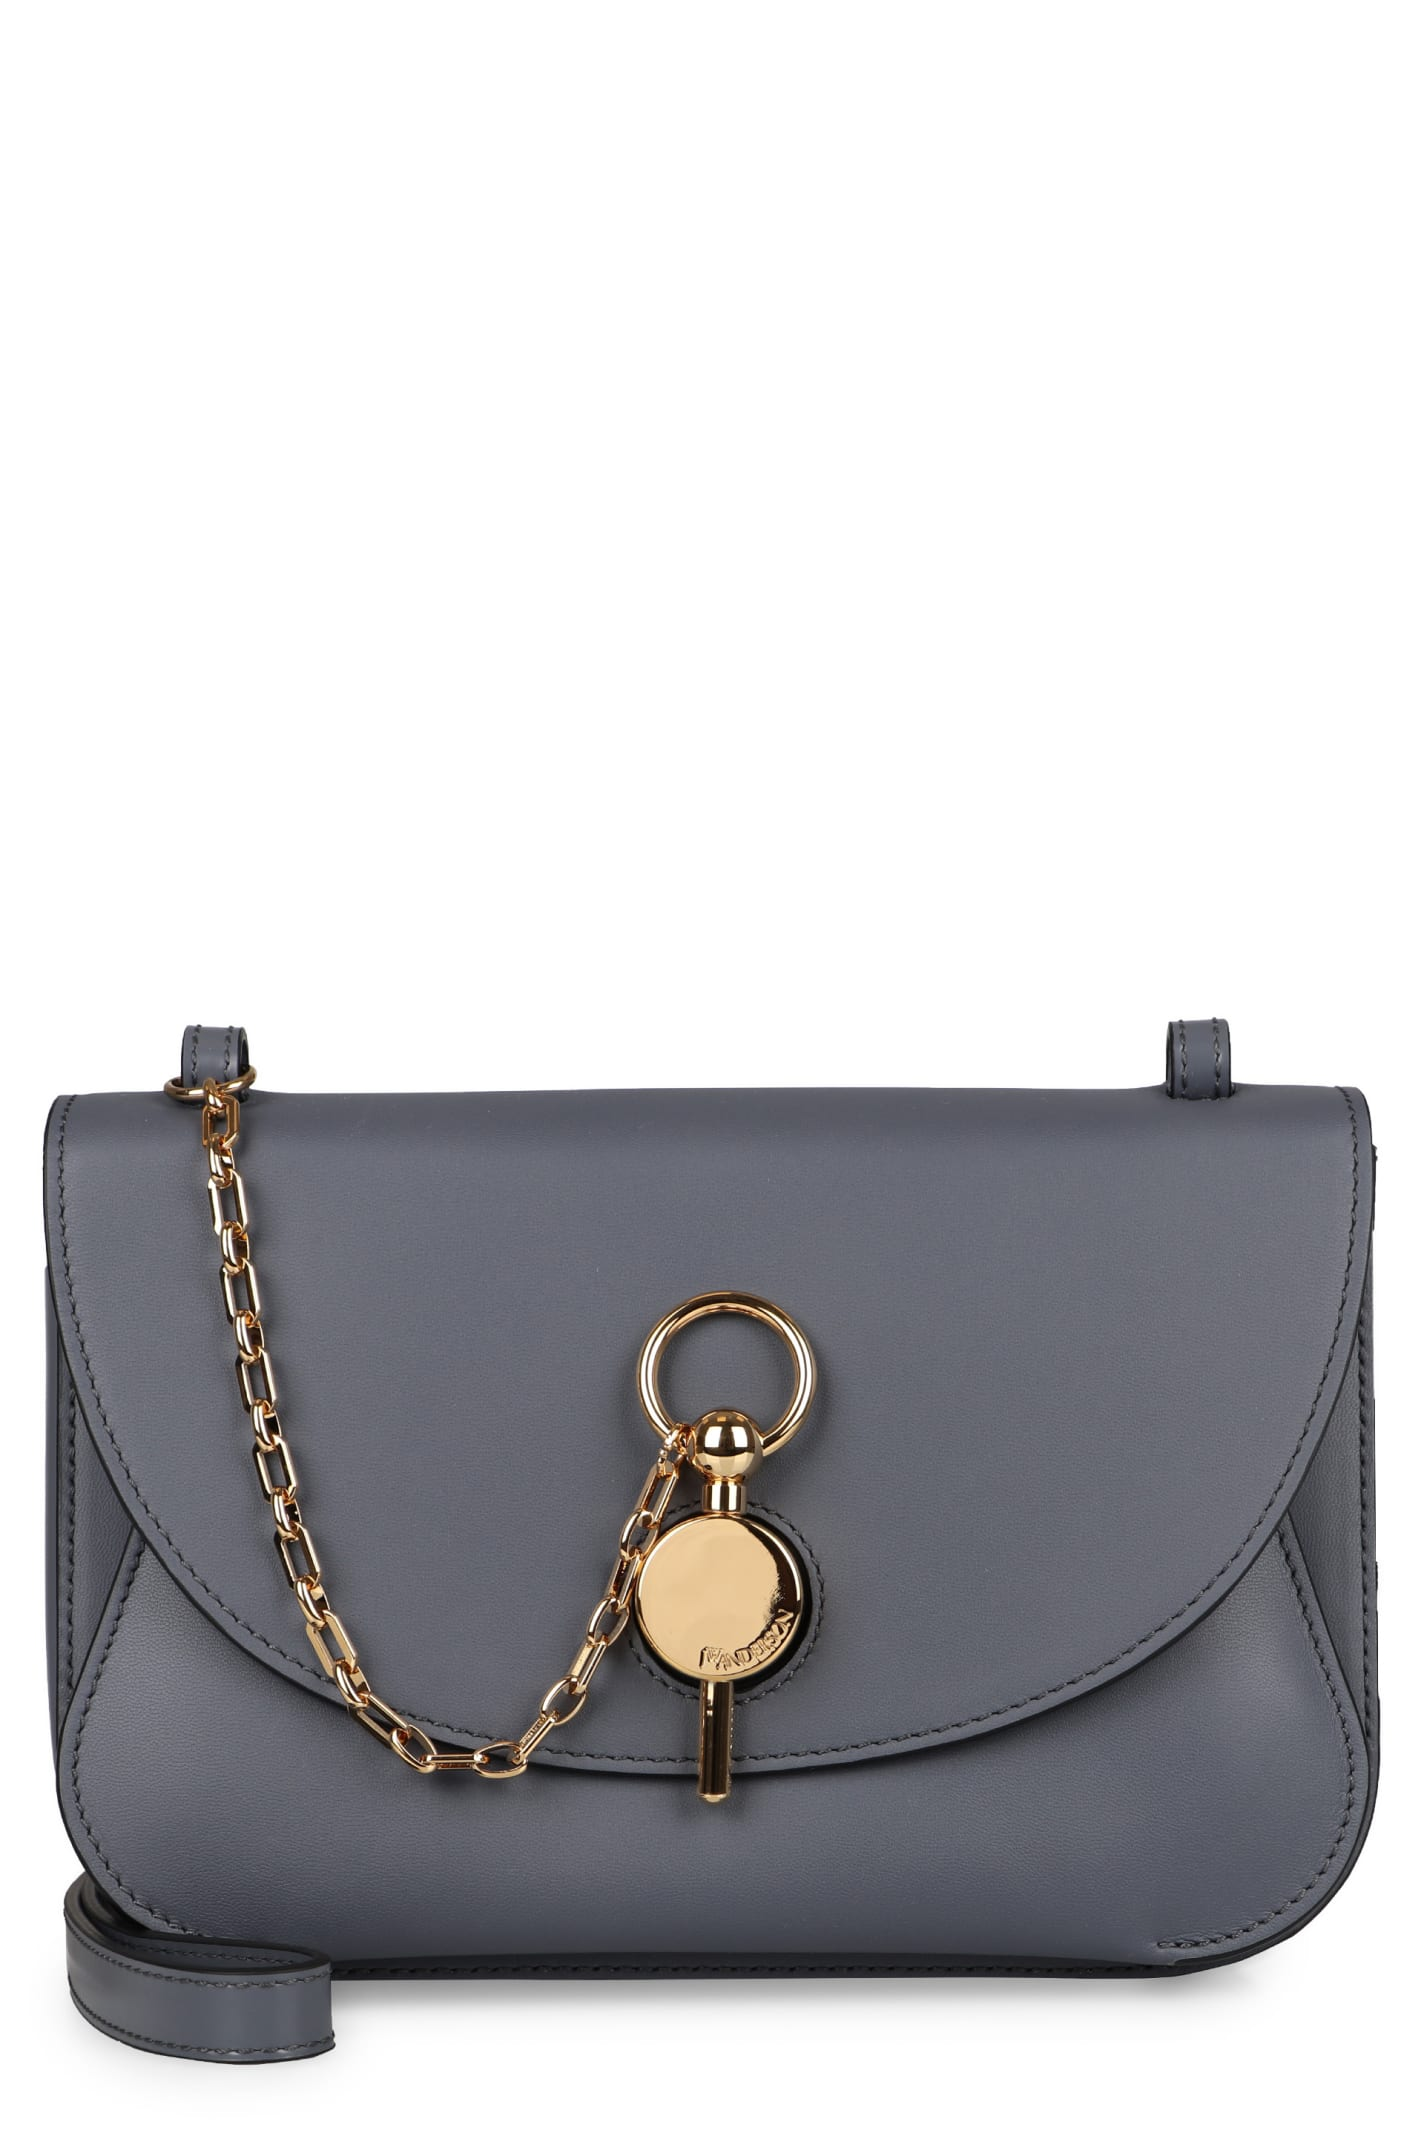 J.W. Anderson Keyts Leather Shoulder Bag